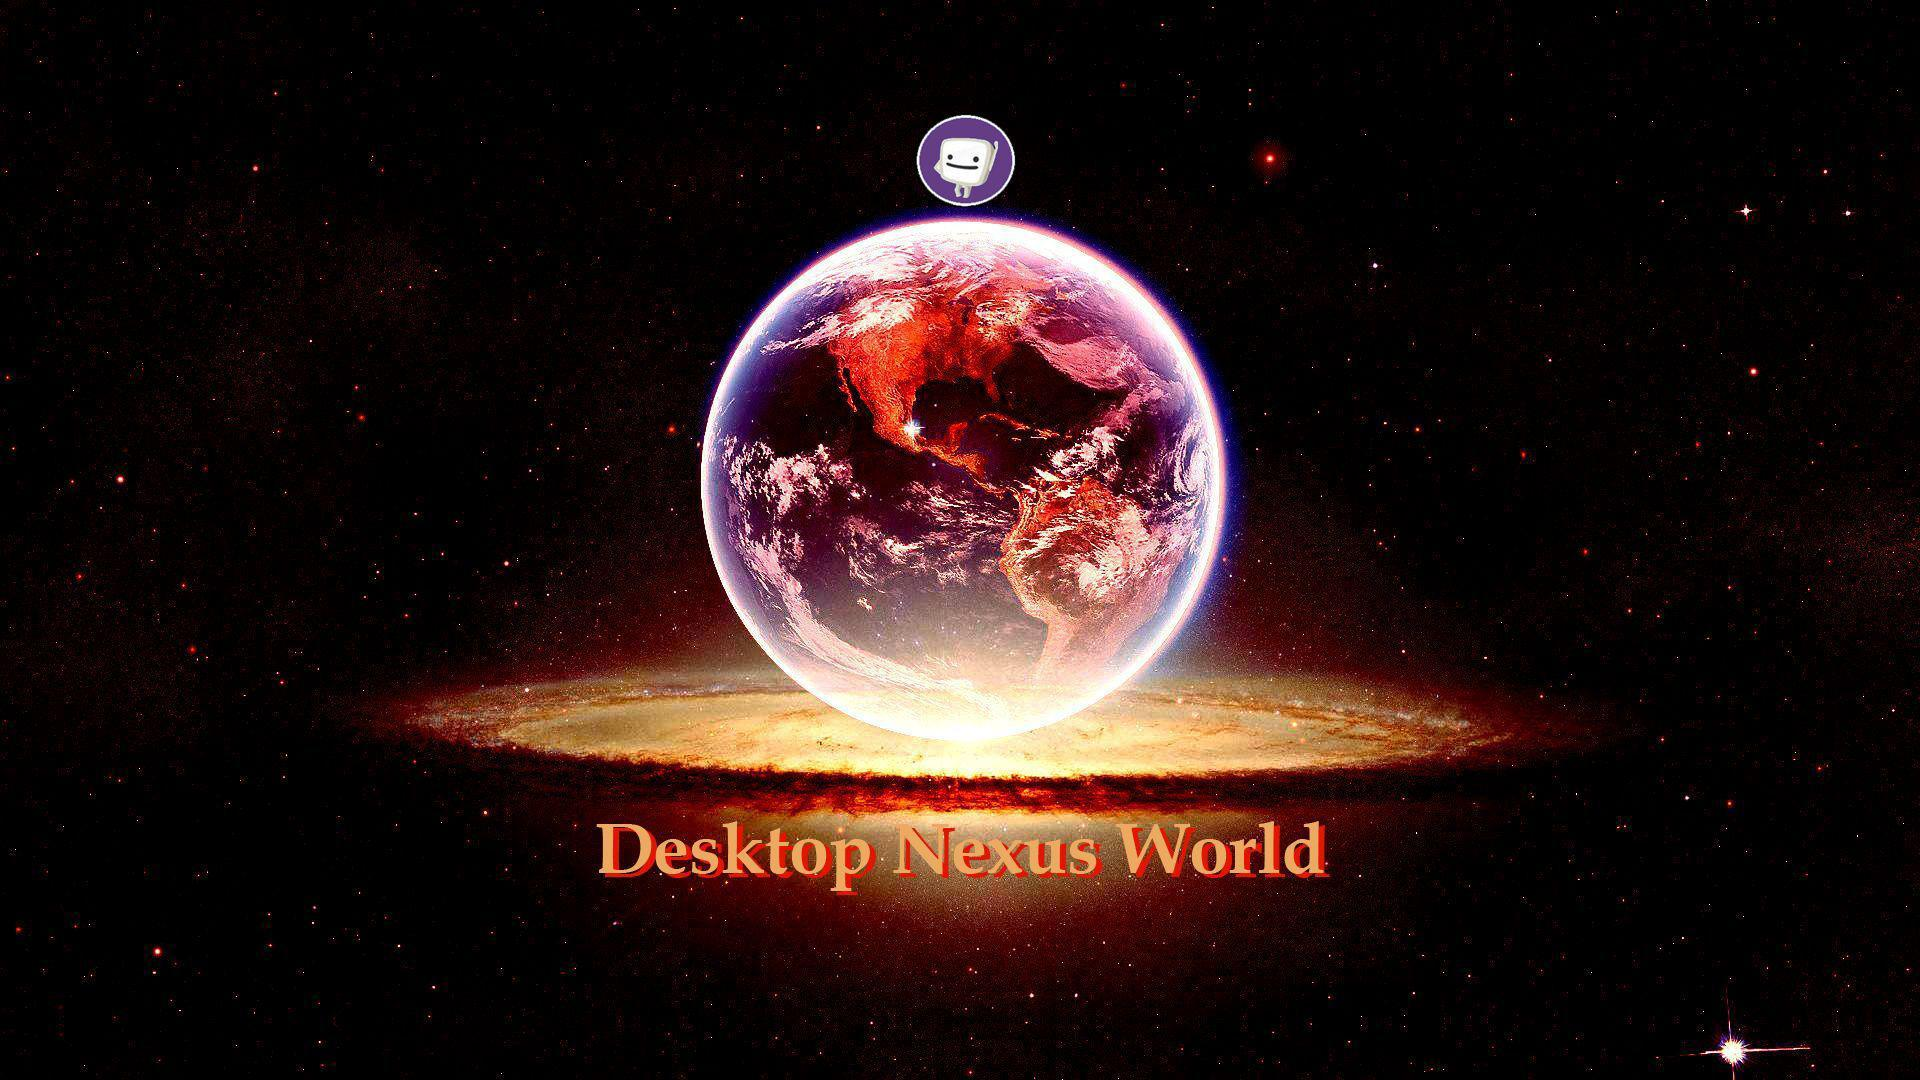 desktop nexus hd desktop wallpapers for widescreen high